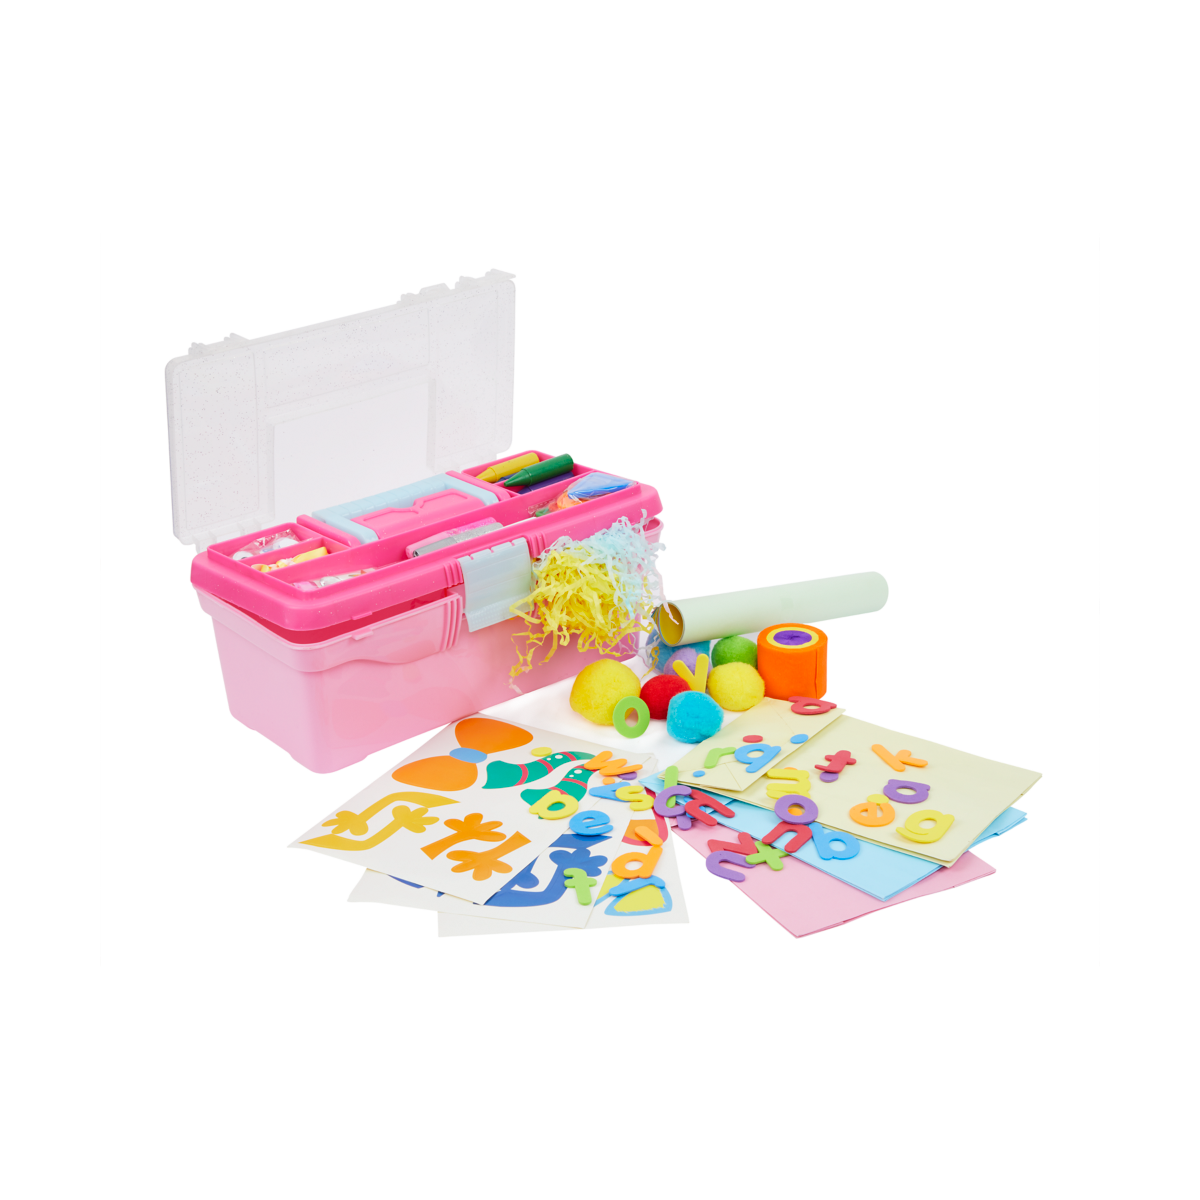 Early Learning Centre Collage Toolbox - Pink from Early Learning Center